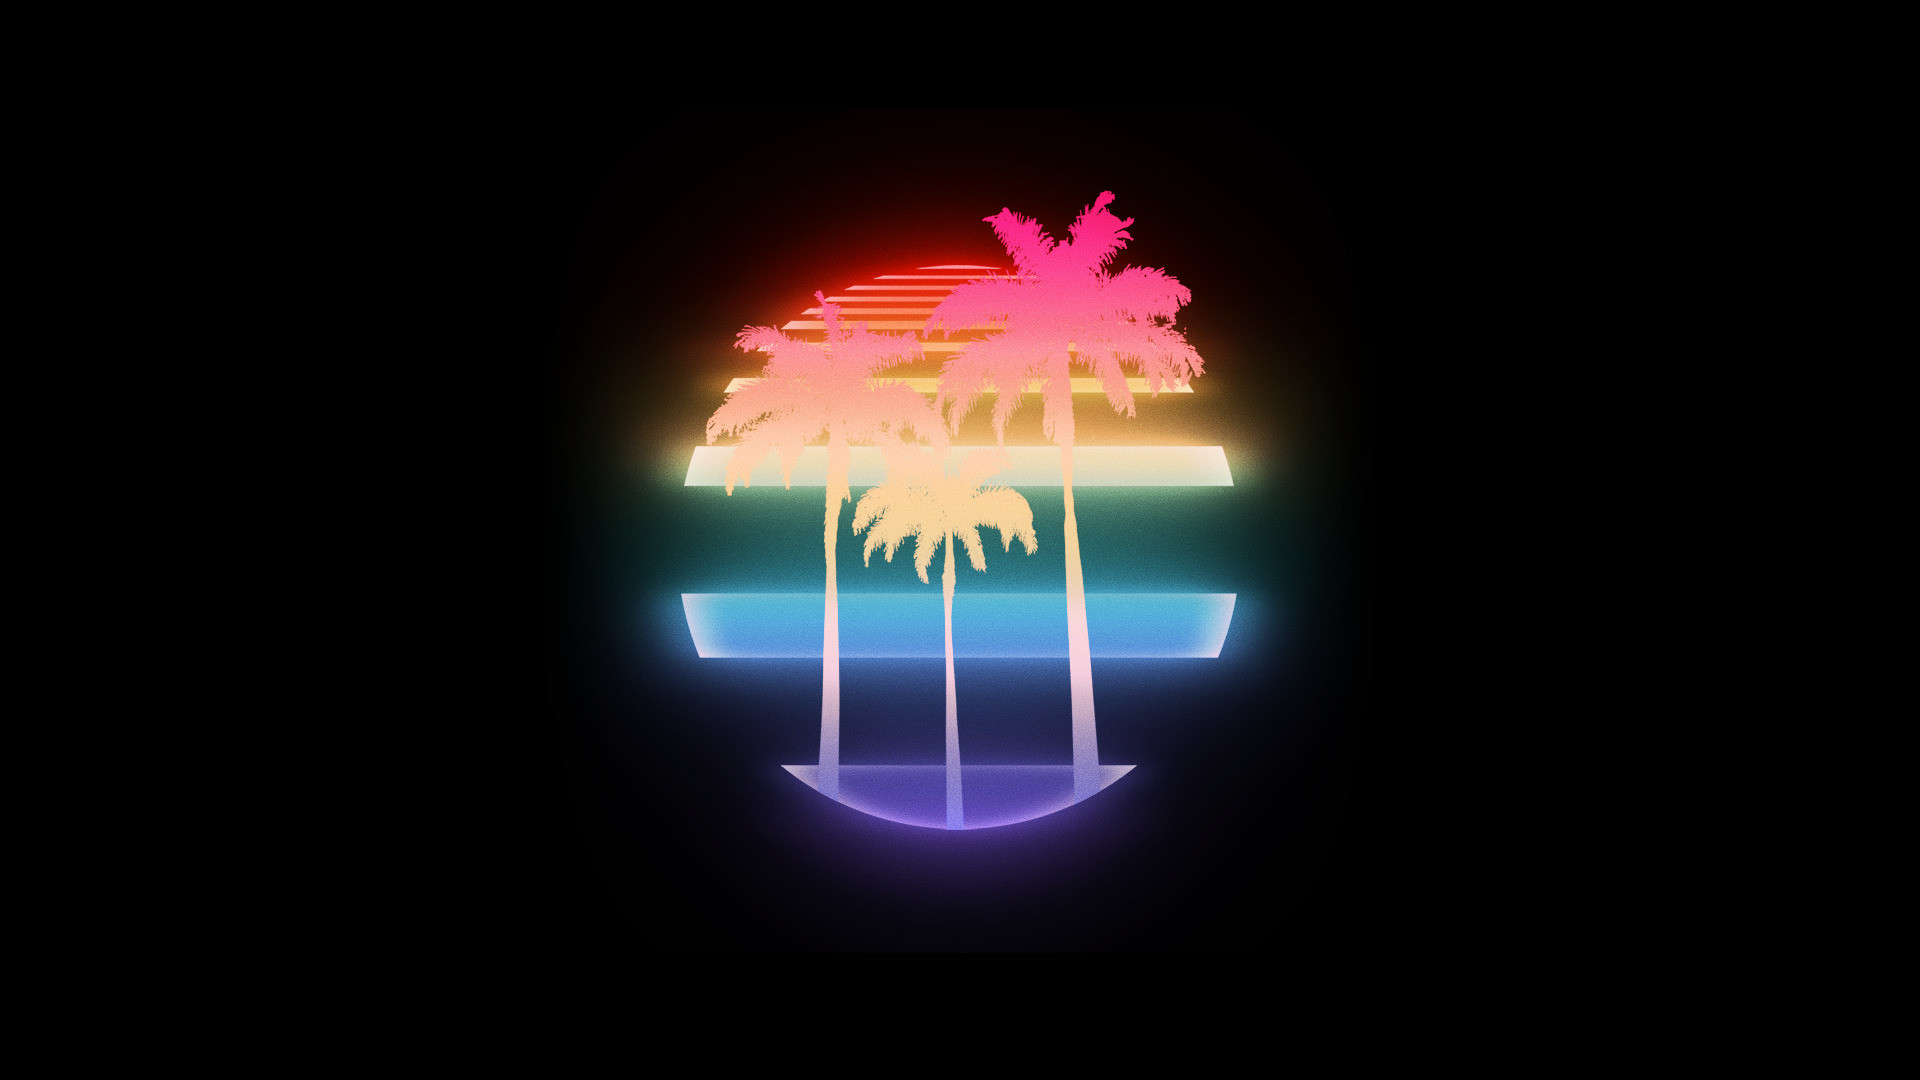 1920x1080 VHS, Palm trees, 1980s, New Retro Wave, Retro style, Vintage,